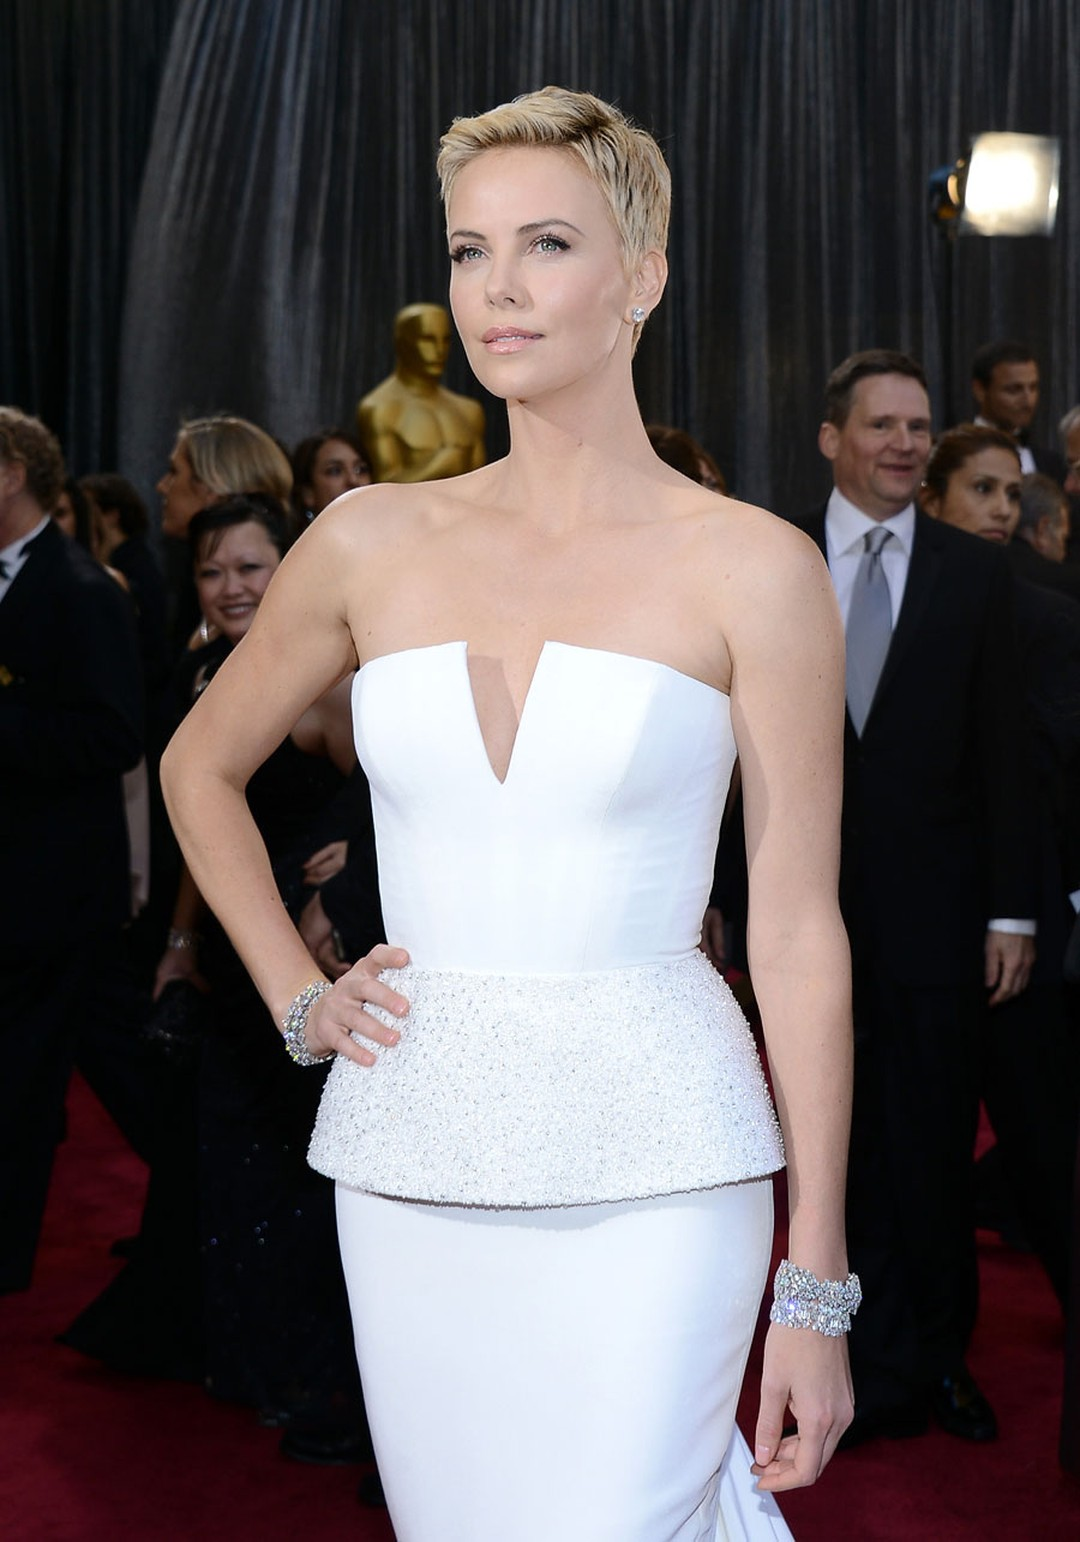 Award presenter Charlize Theron in US$4.5 million worth of Harry Winston diamonds at the 2013 Academy Awards